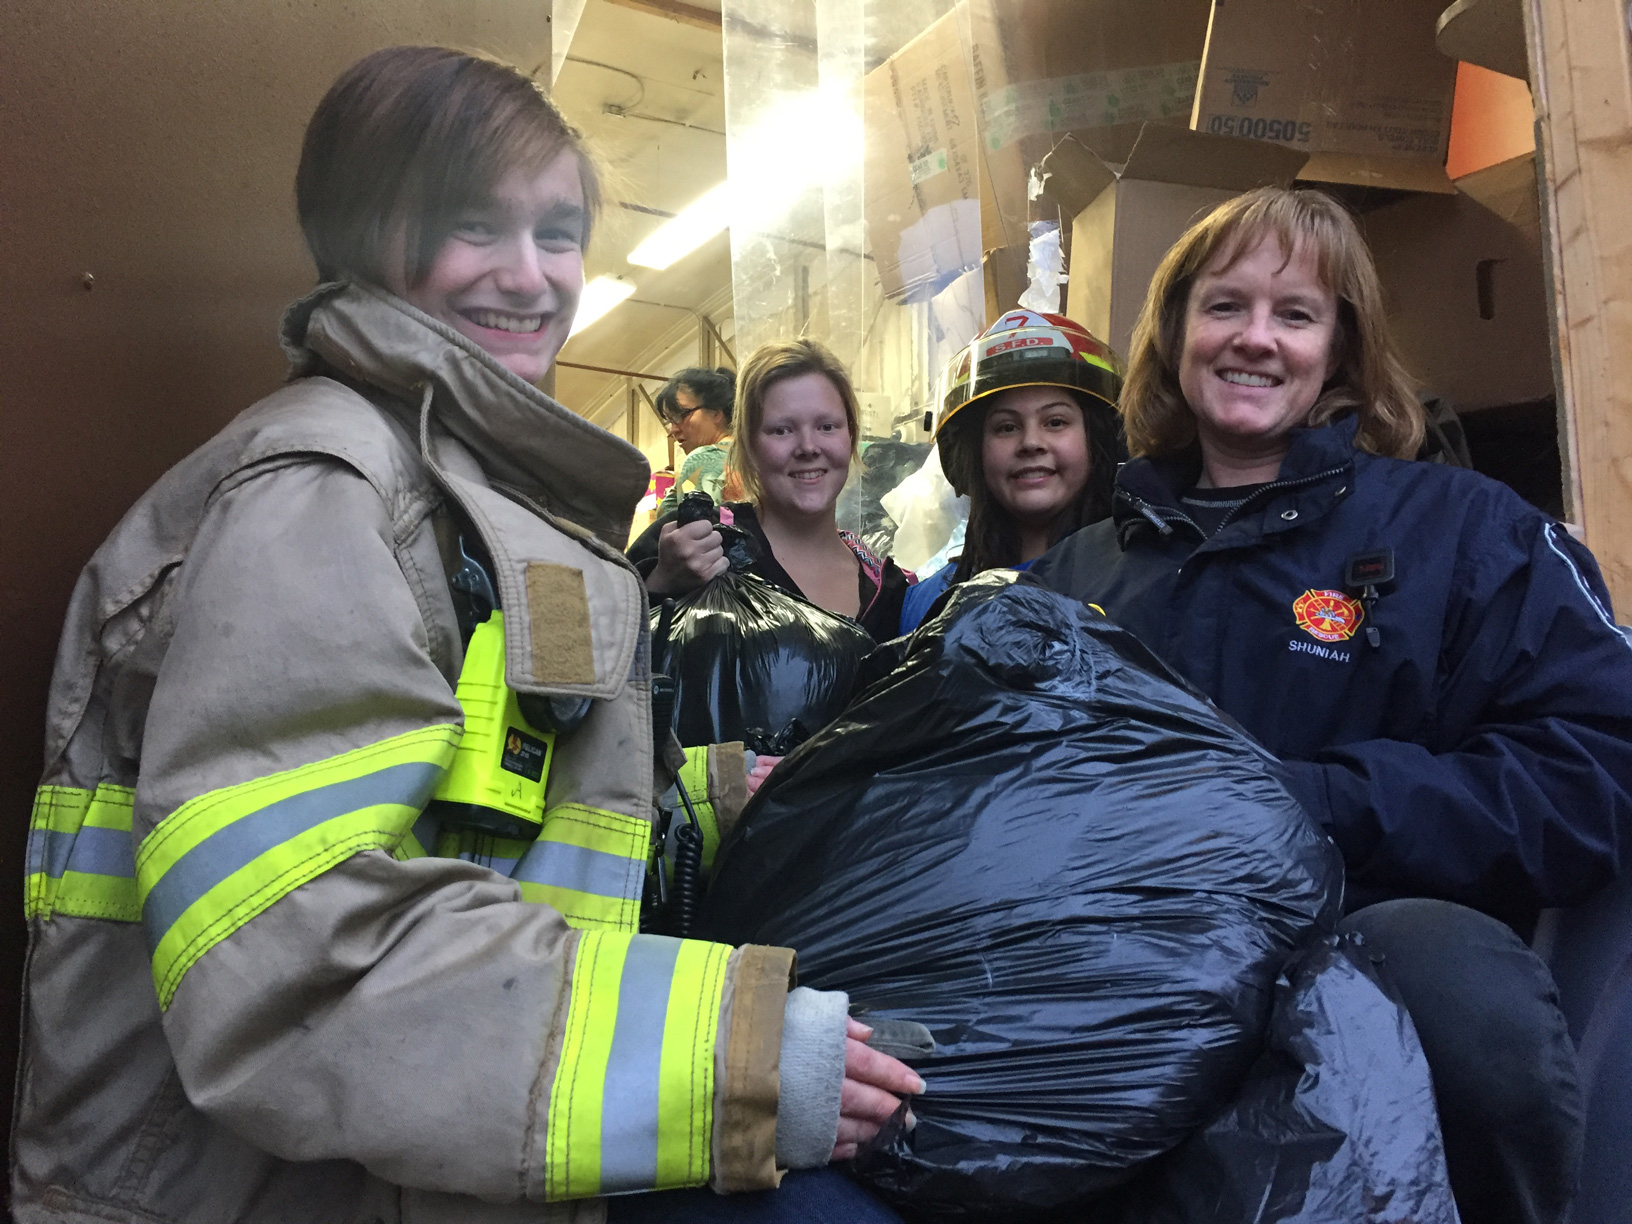 Clothing Assistance and Shuniah Fire unload clothing